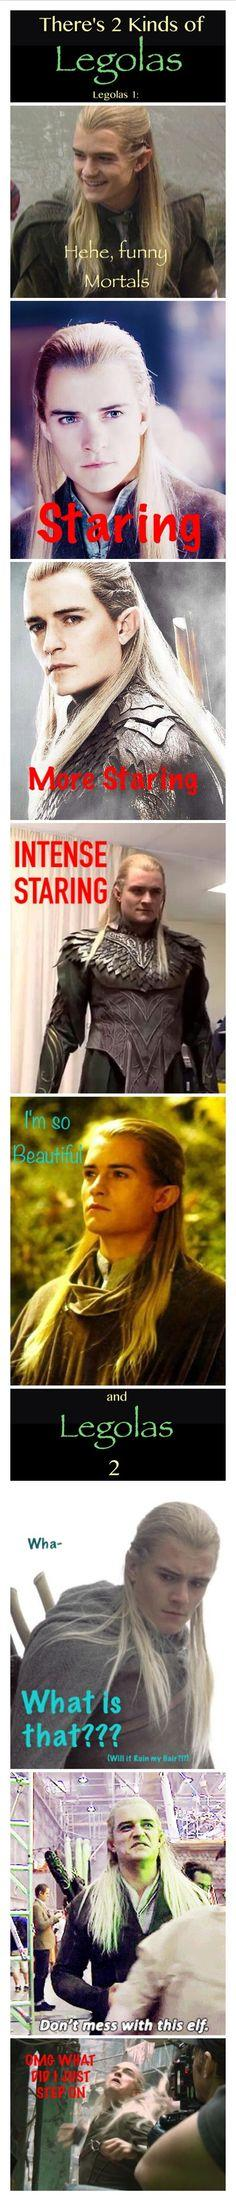 I just have to apologize to Orlando Bloom. I feel slightly evil pinning this. XD I'll go ahead and say that Legolas is one of my favorite characters, and I don't actually think of him as being a girly boy. (I also don't like him for looks, but